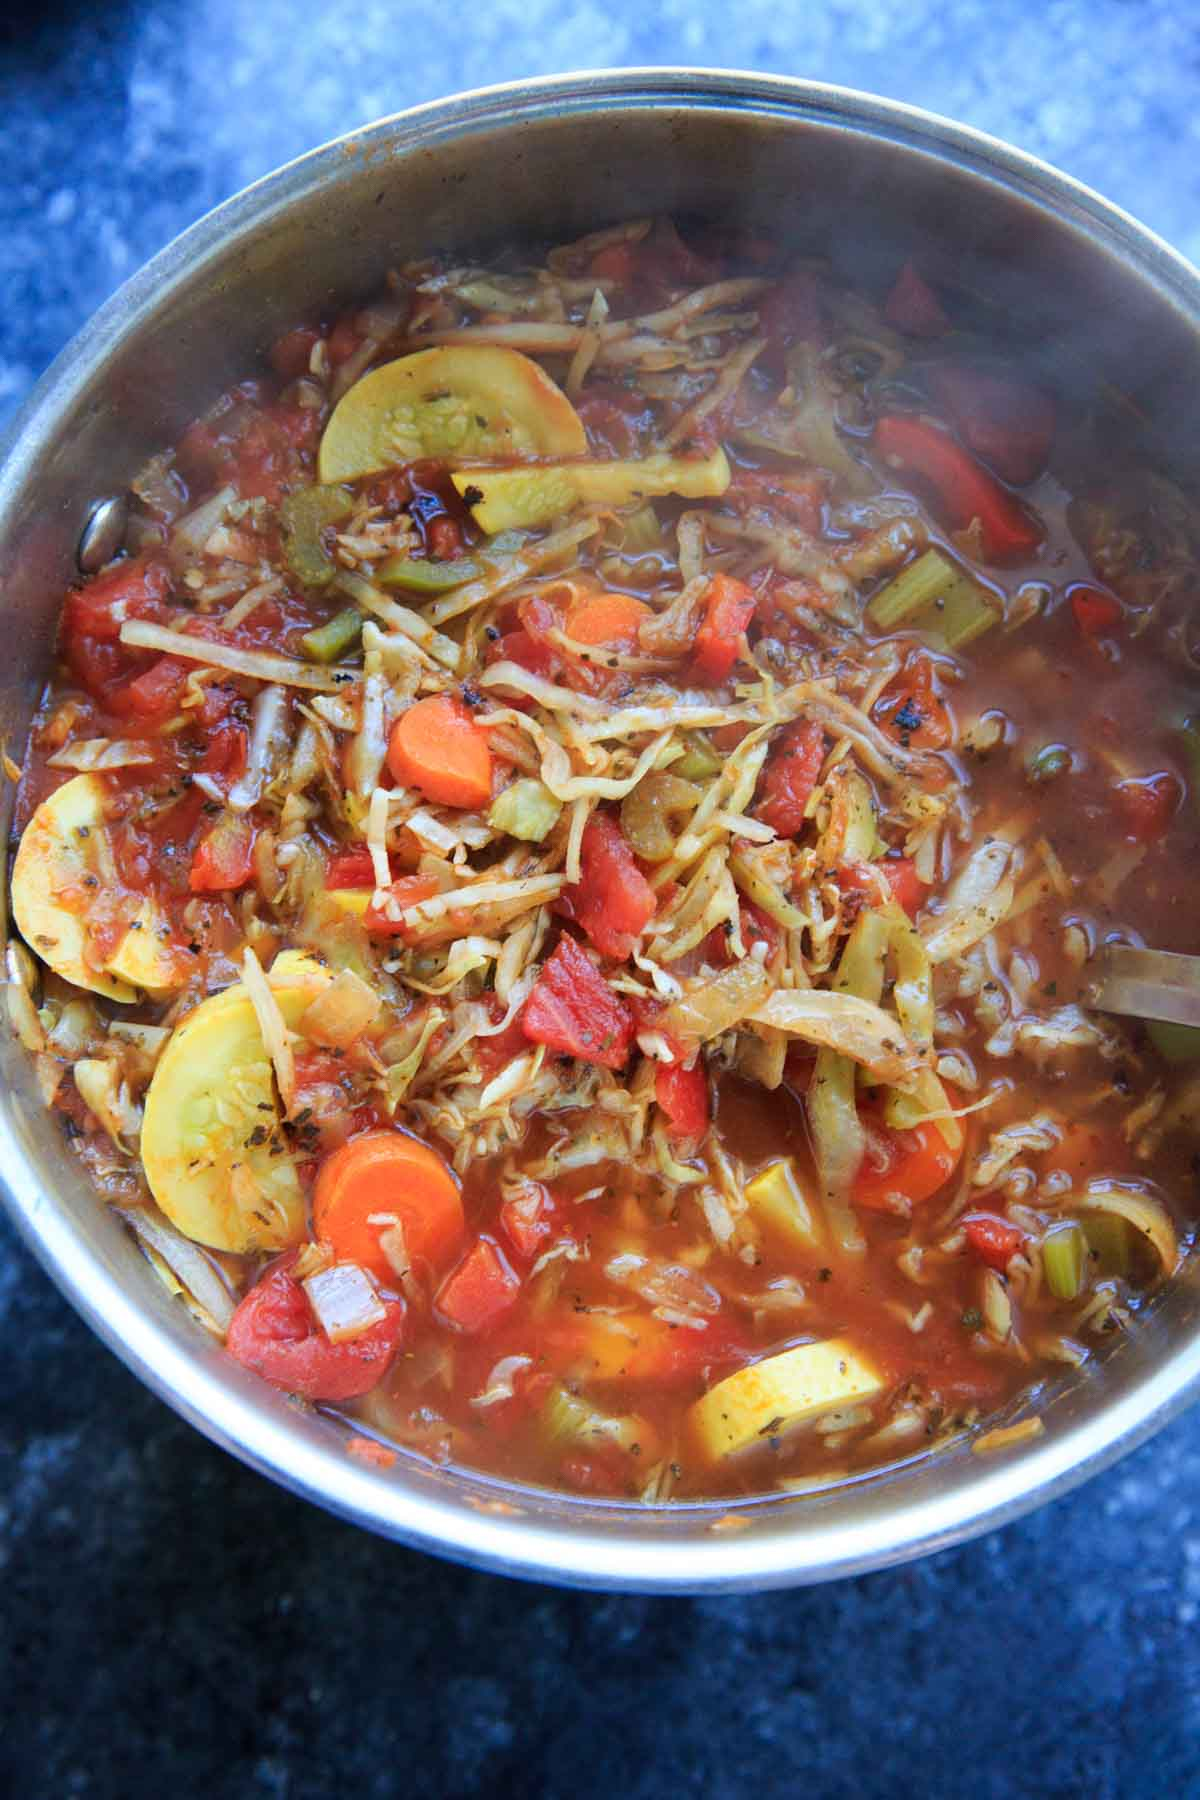 detox cabbage soup with tomatoes and squash in pot